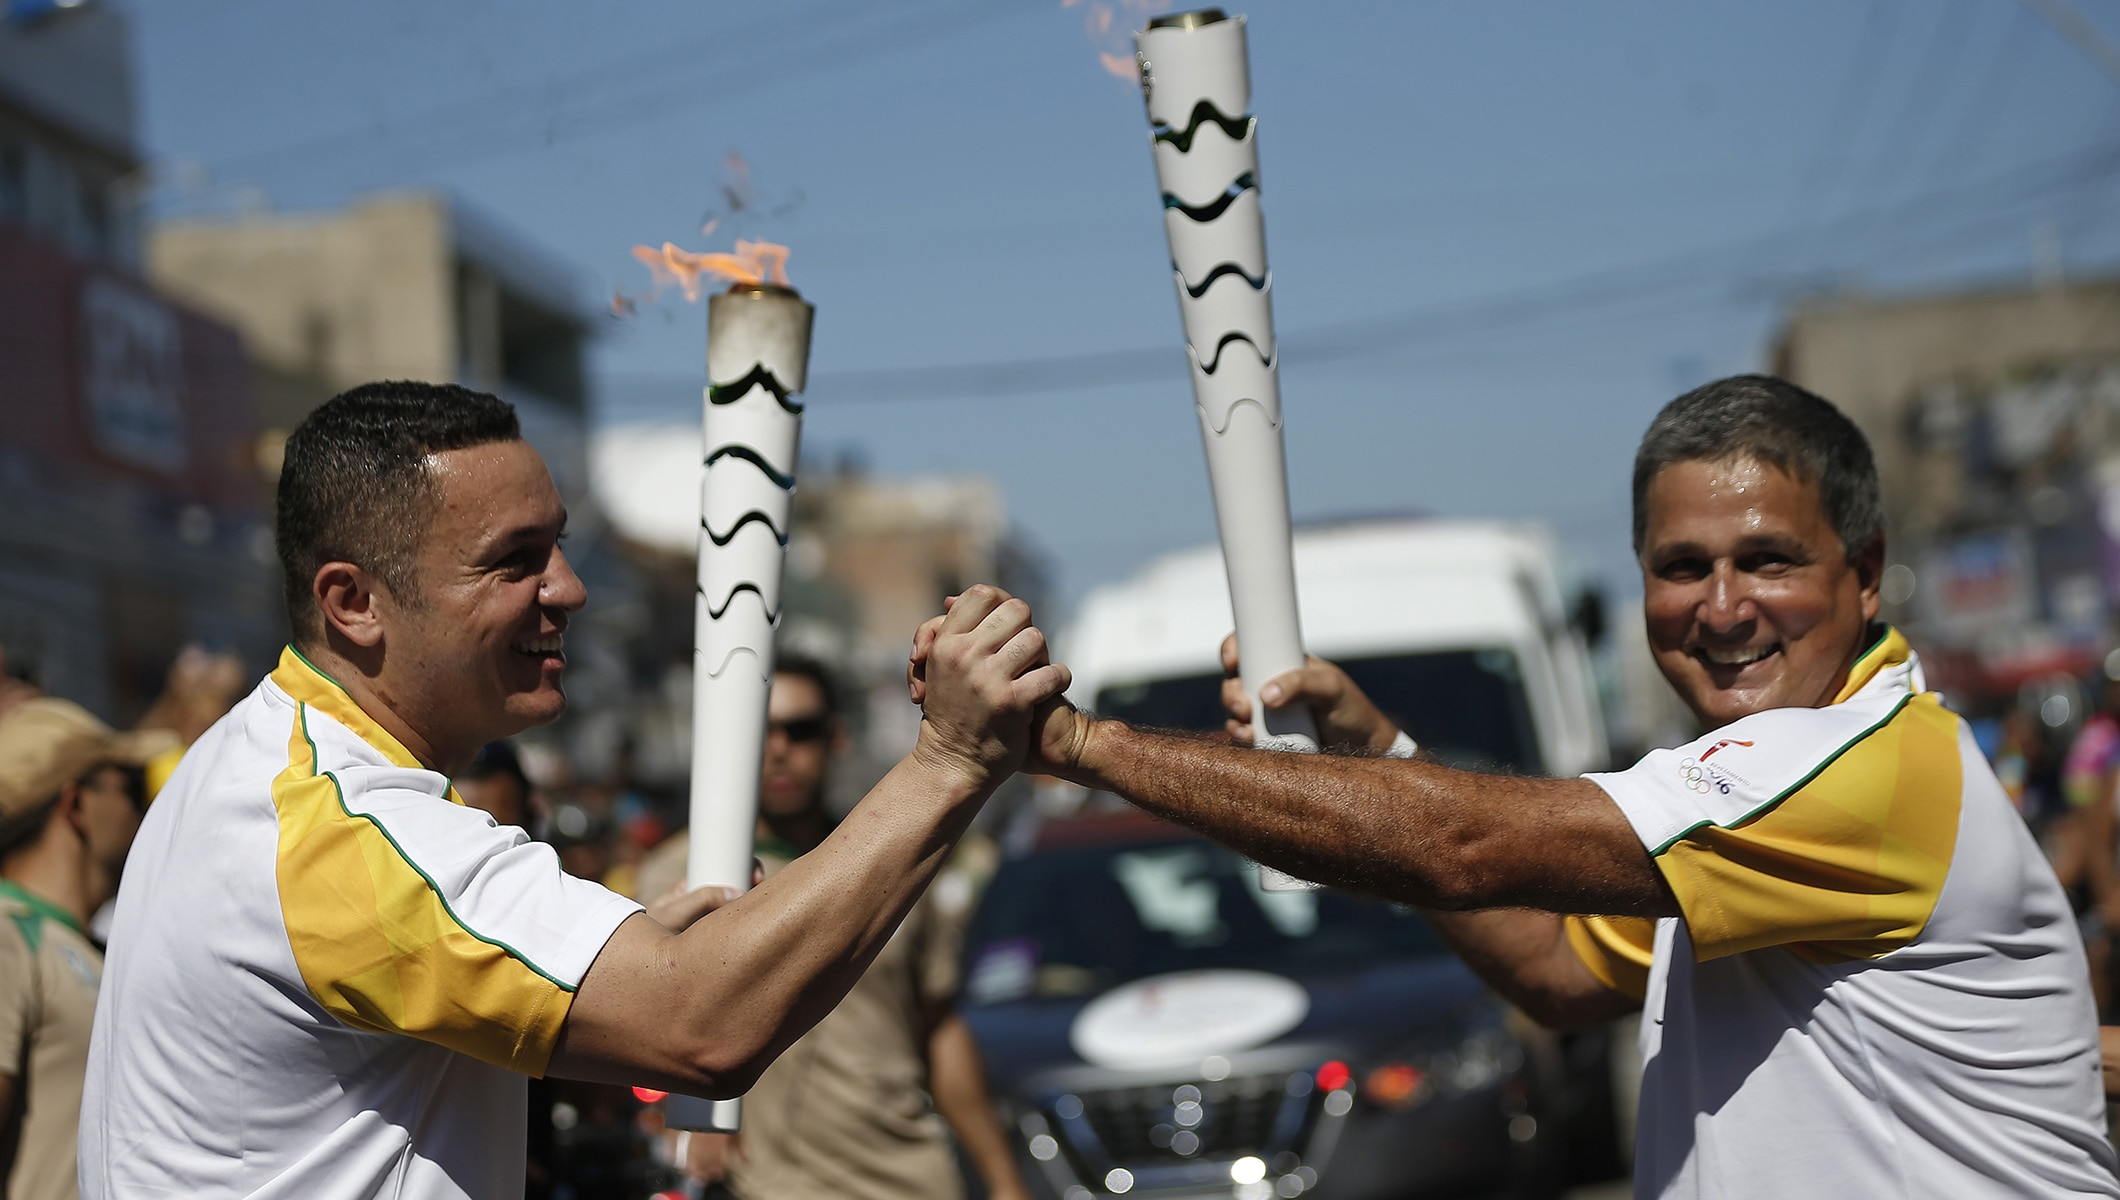 RIO 2016 OLYMPIC TORCH RELAY – DAY 15